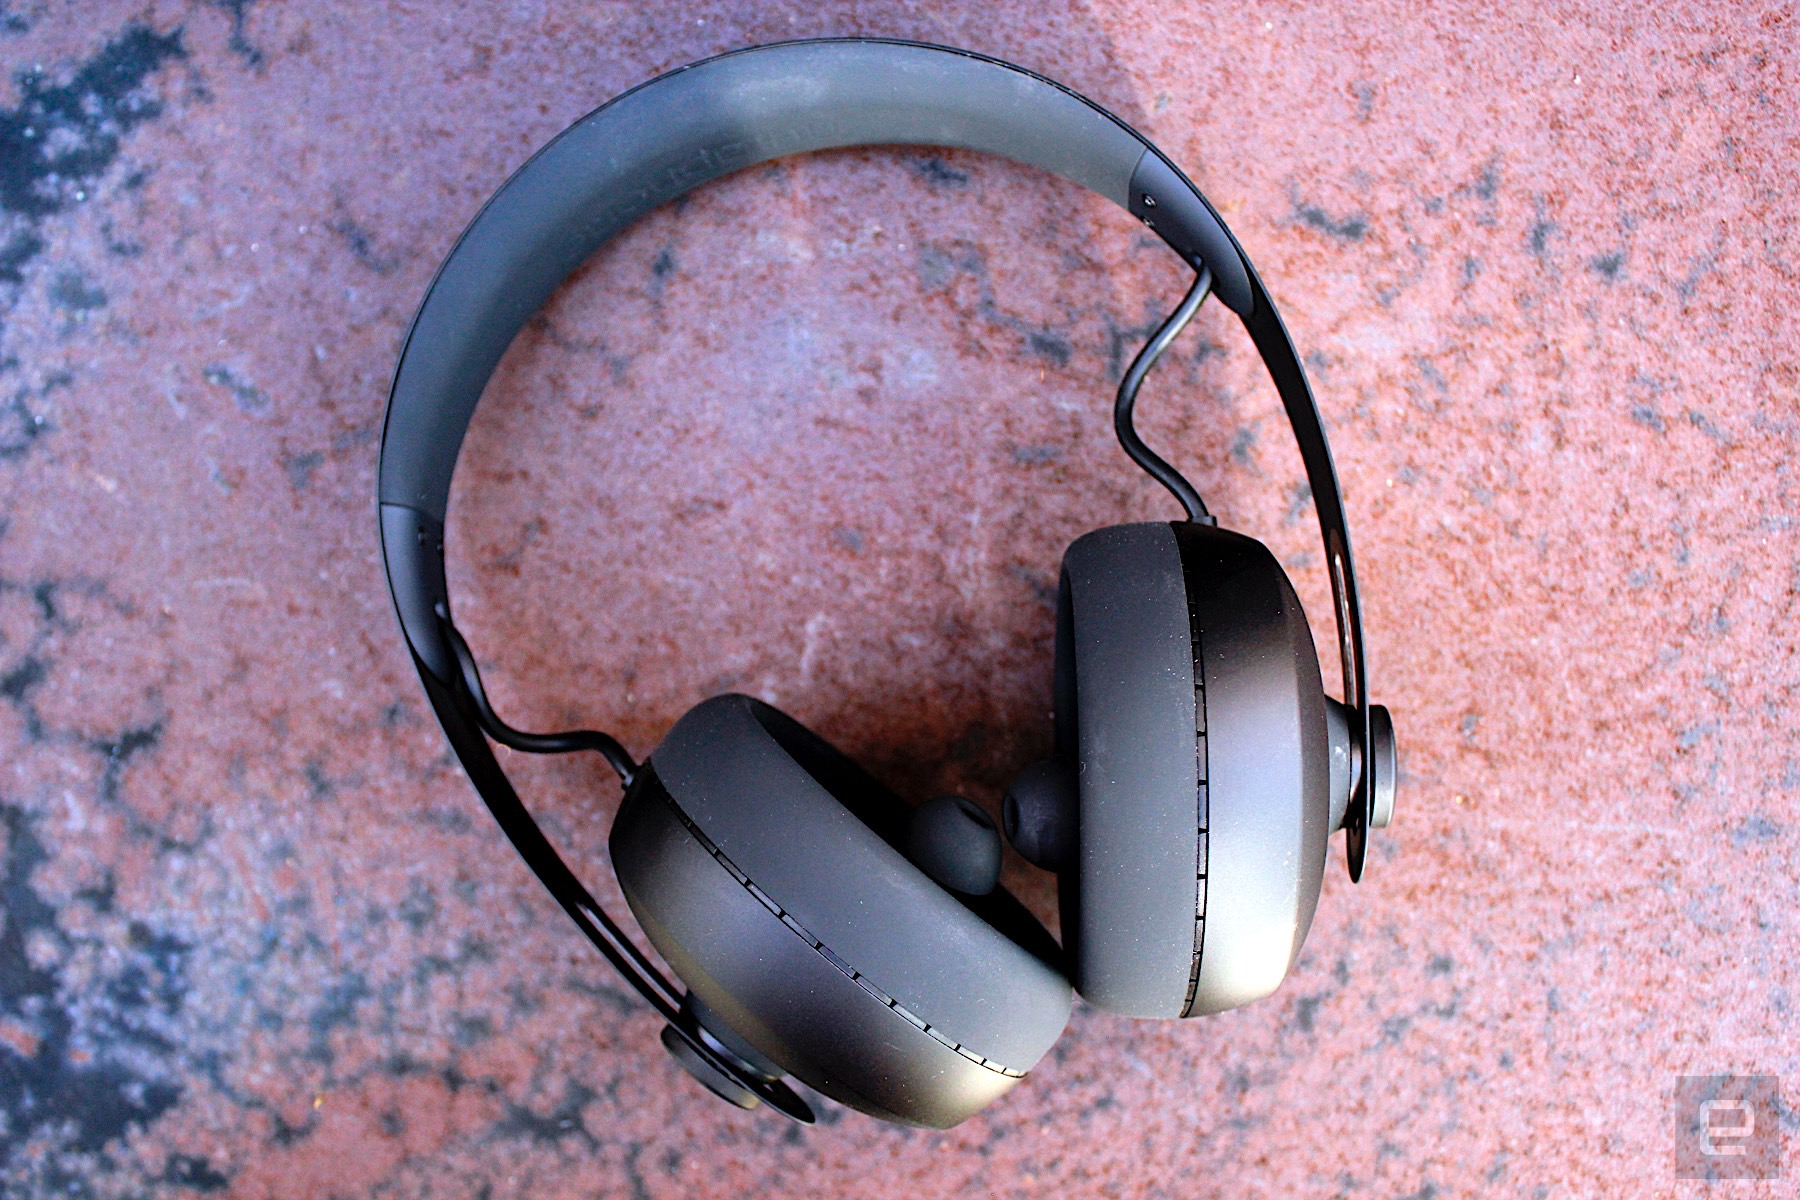 d9d28831f91 The first time you use the headphones, you can (and should) undertake a  hearing test. It's automatic (unlike similar products that require you to  listen and ...